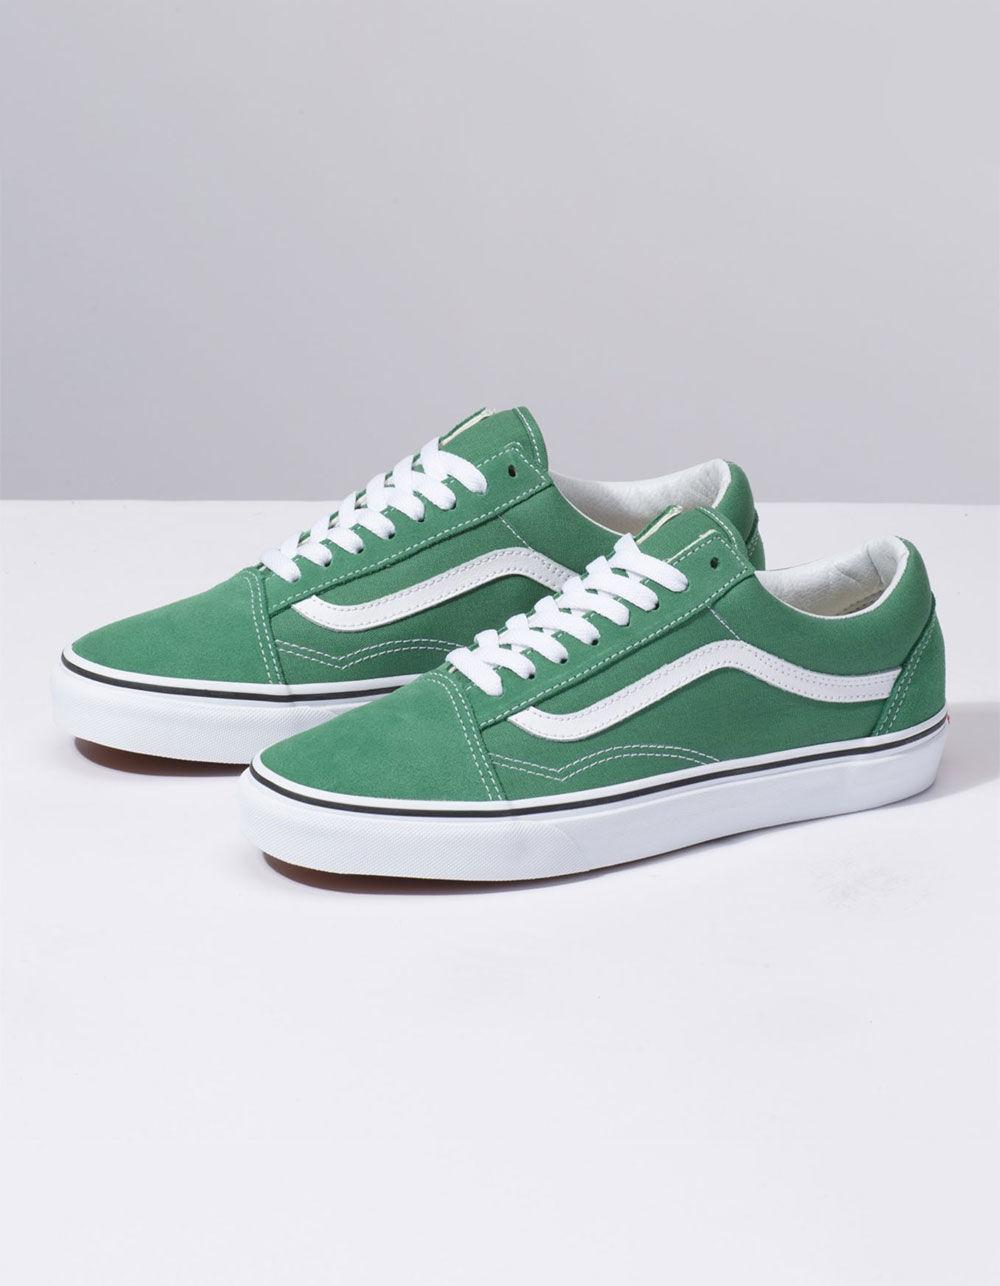 b94a1b6cbeb4 Lyst - Vans Old Skool Deep Grass Green   True White Shoes in Green